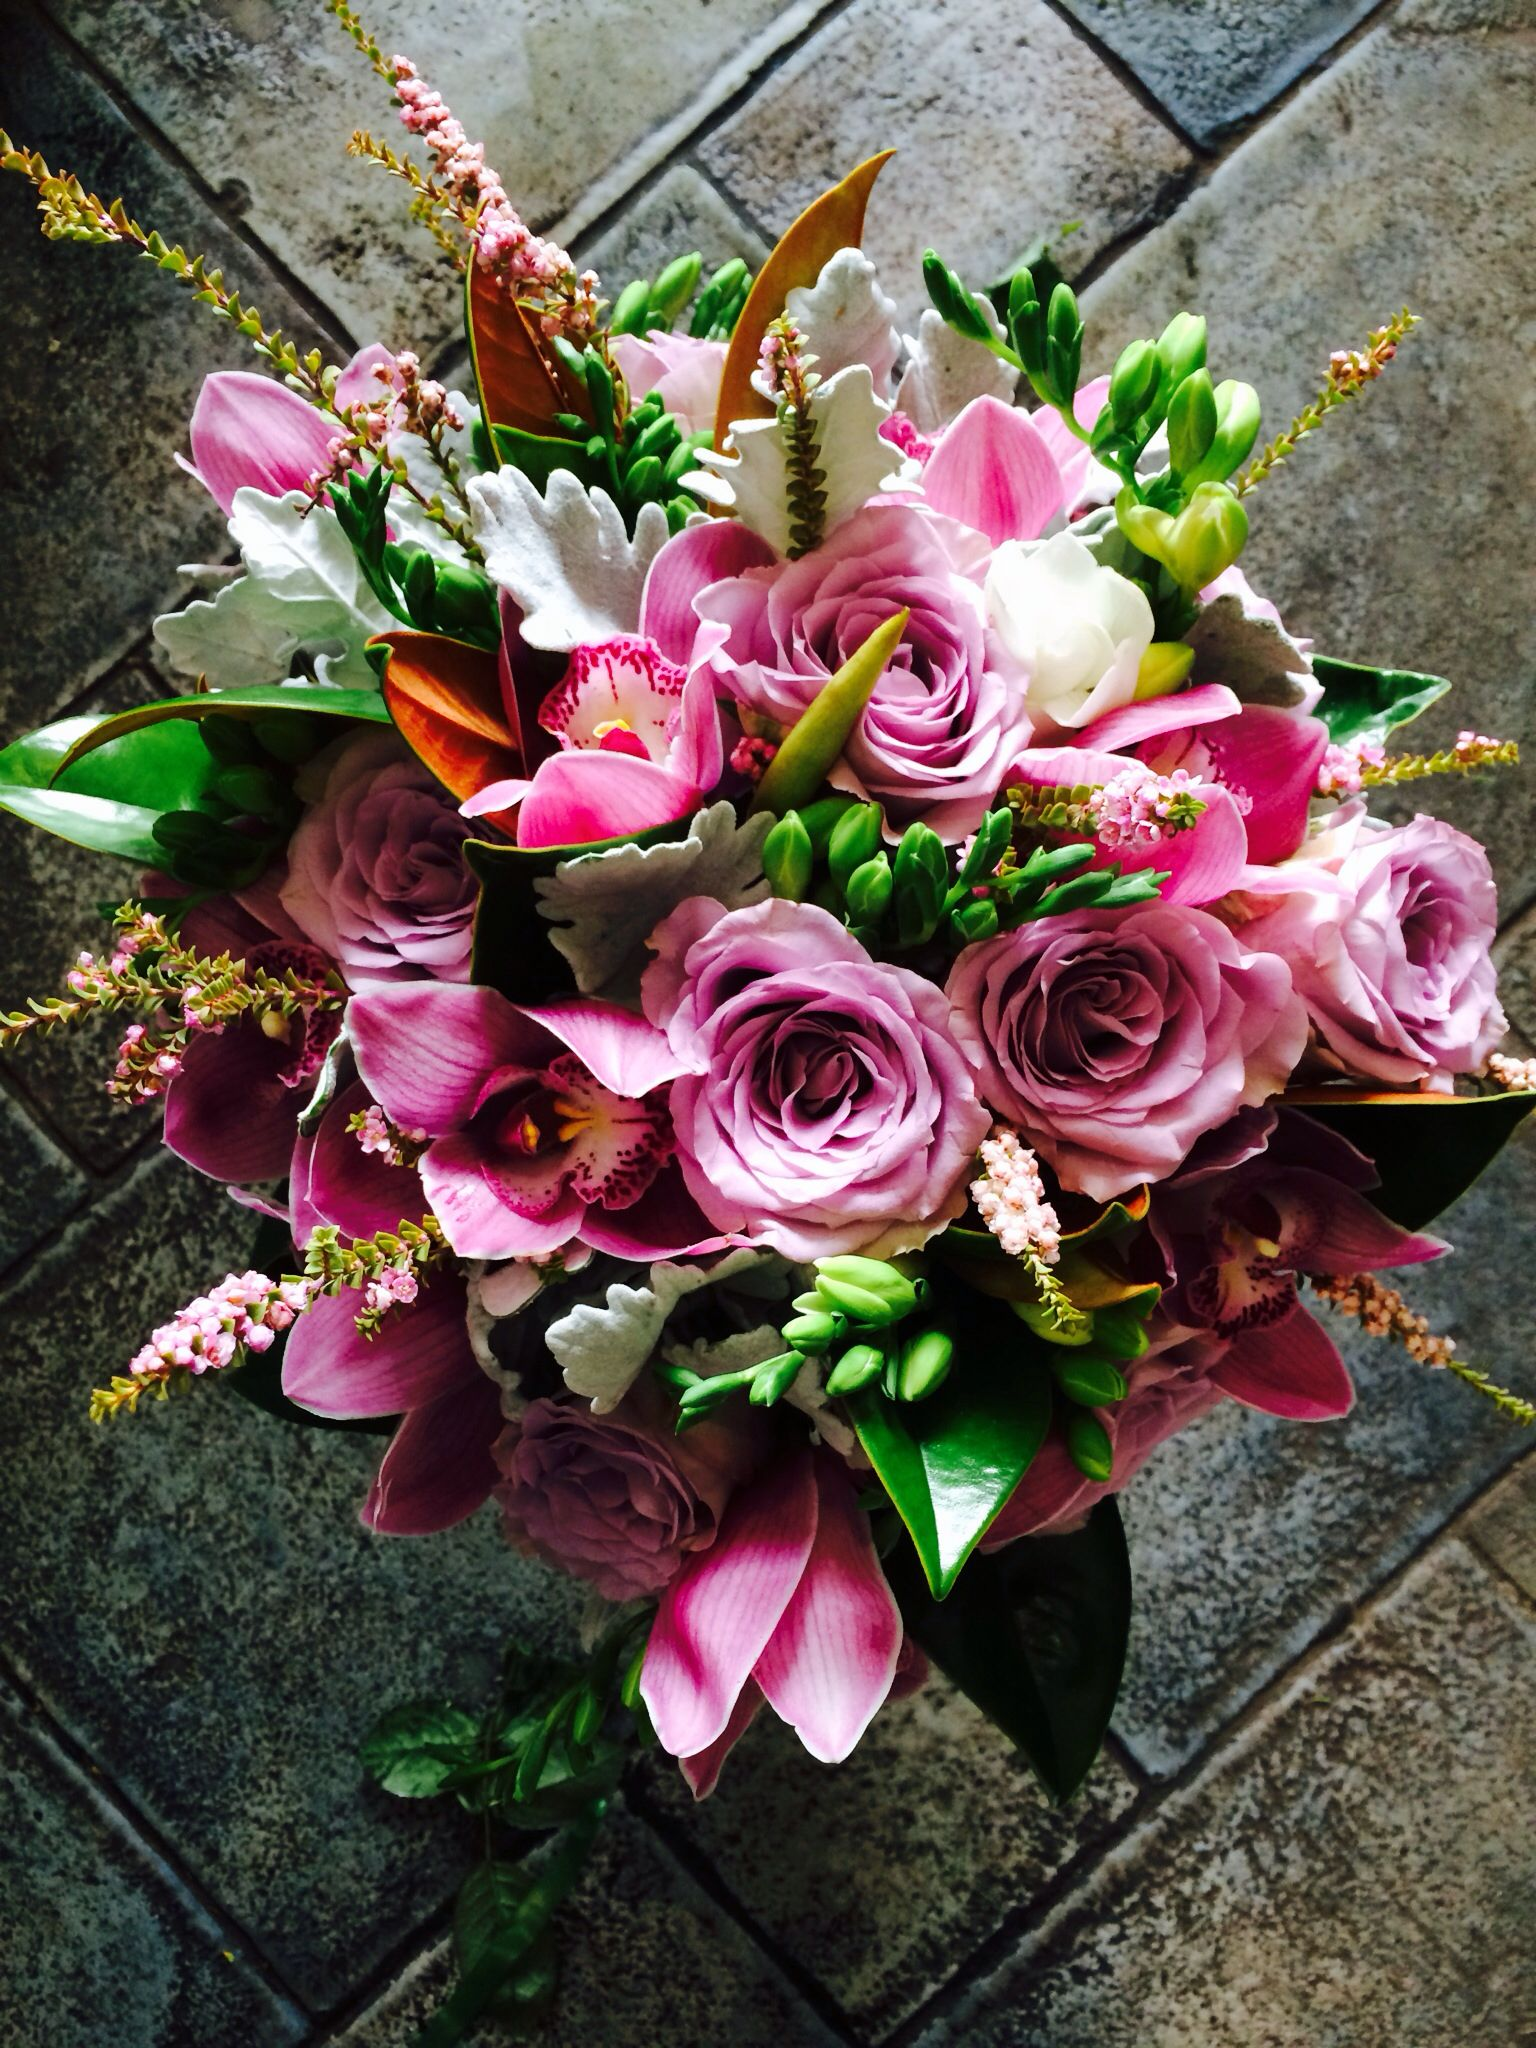 Rustic Love Flower Delivery Flowers Online Flower Delivery